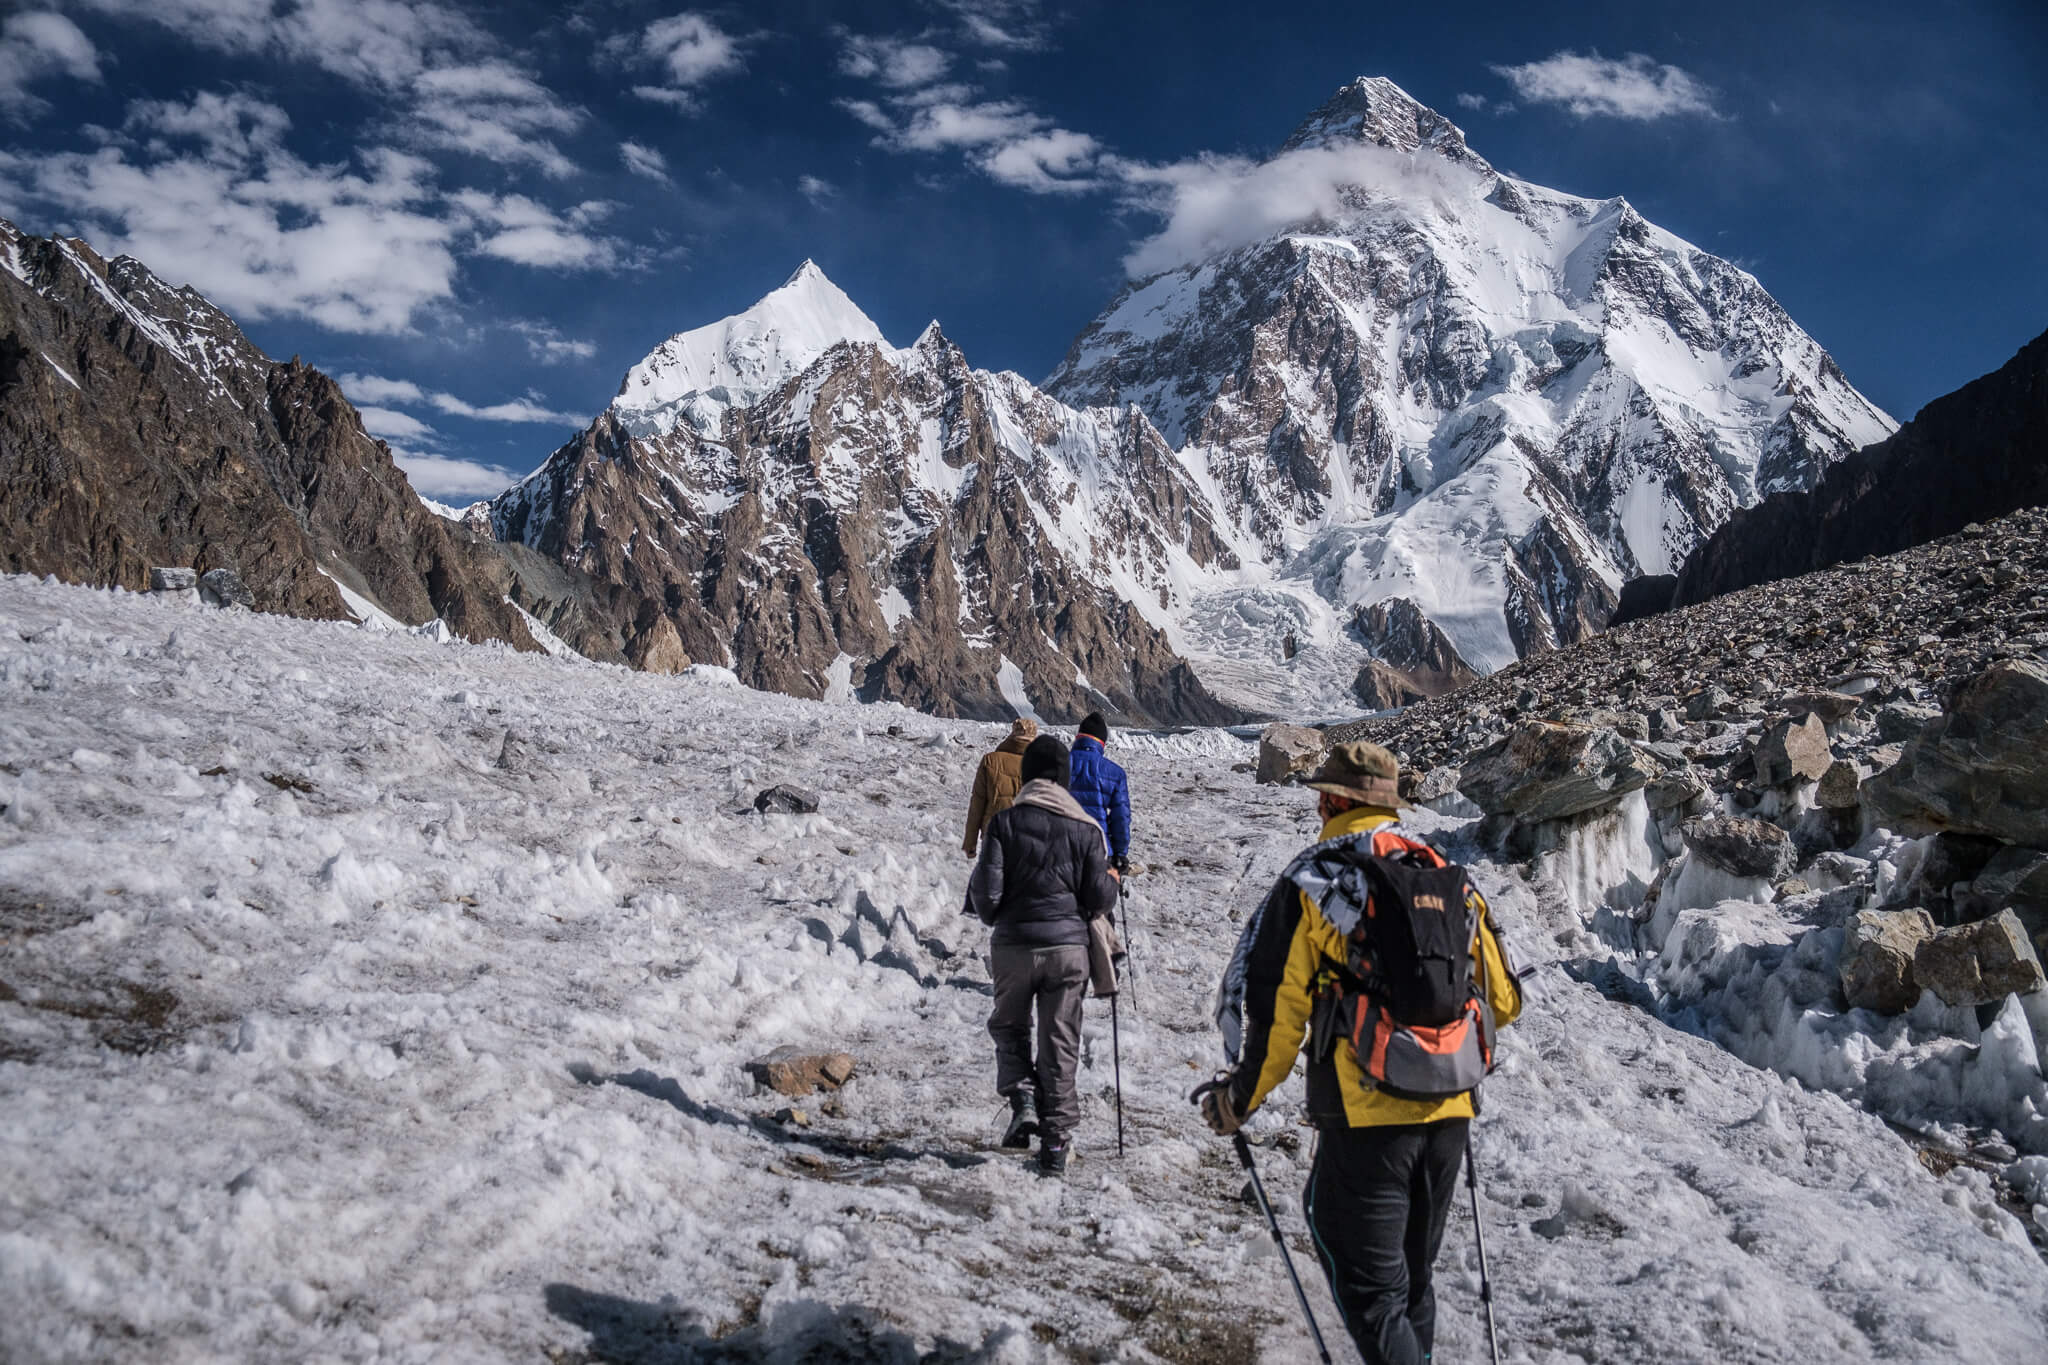 A group of trekkers travelling again in 2021 approach K2 and the K2 Base Camp